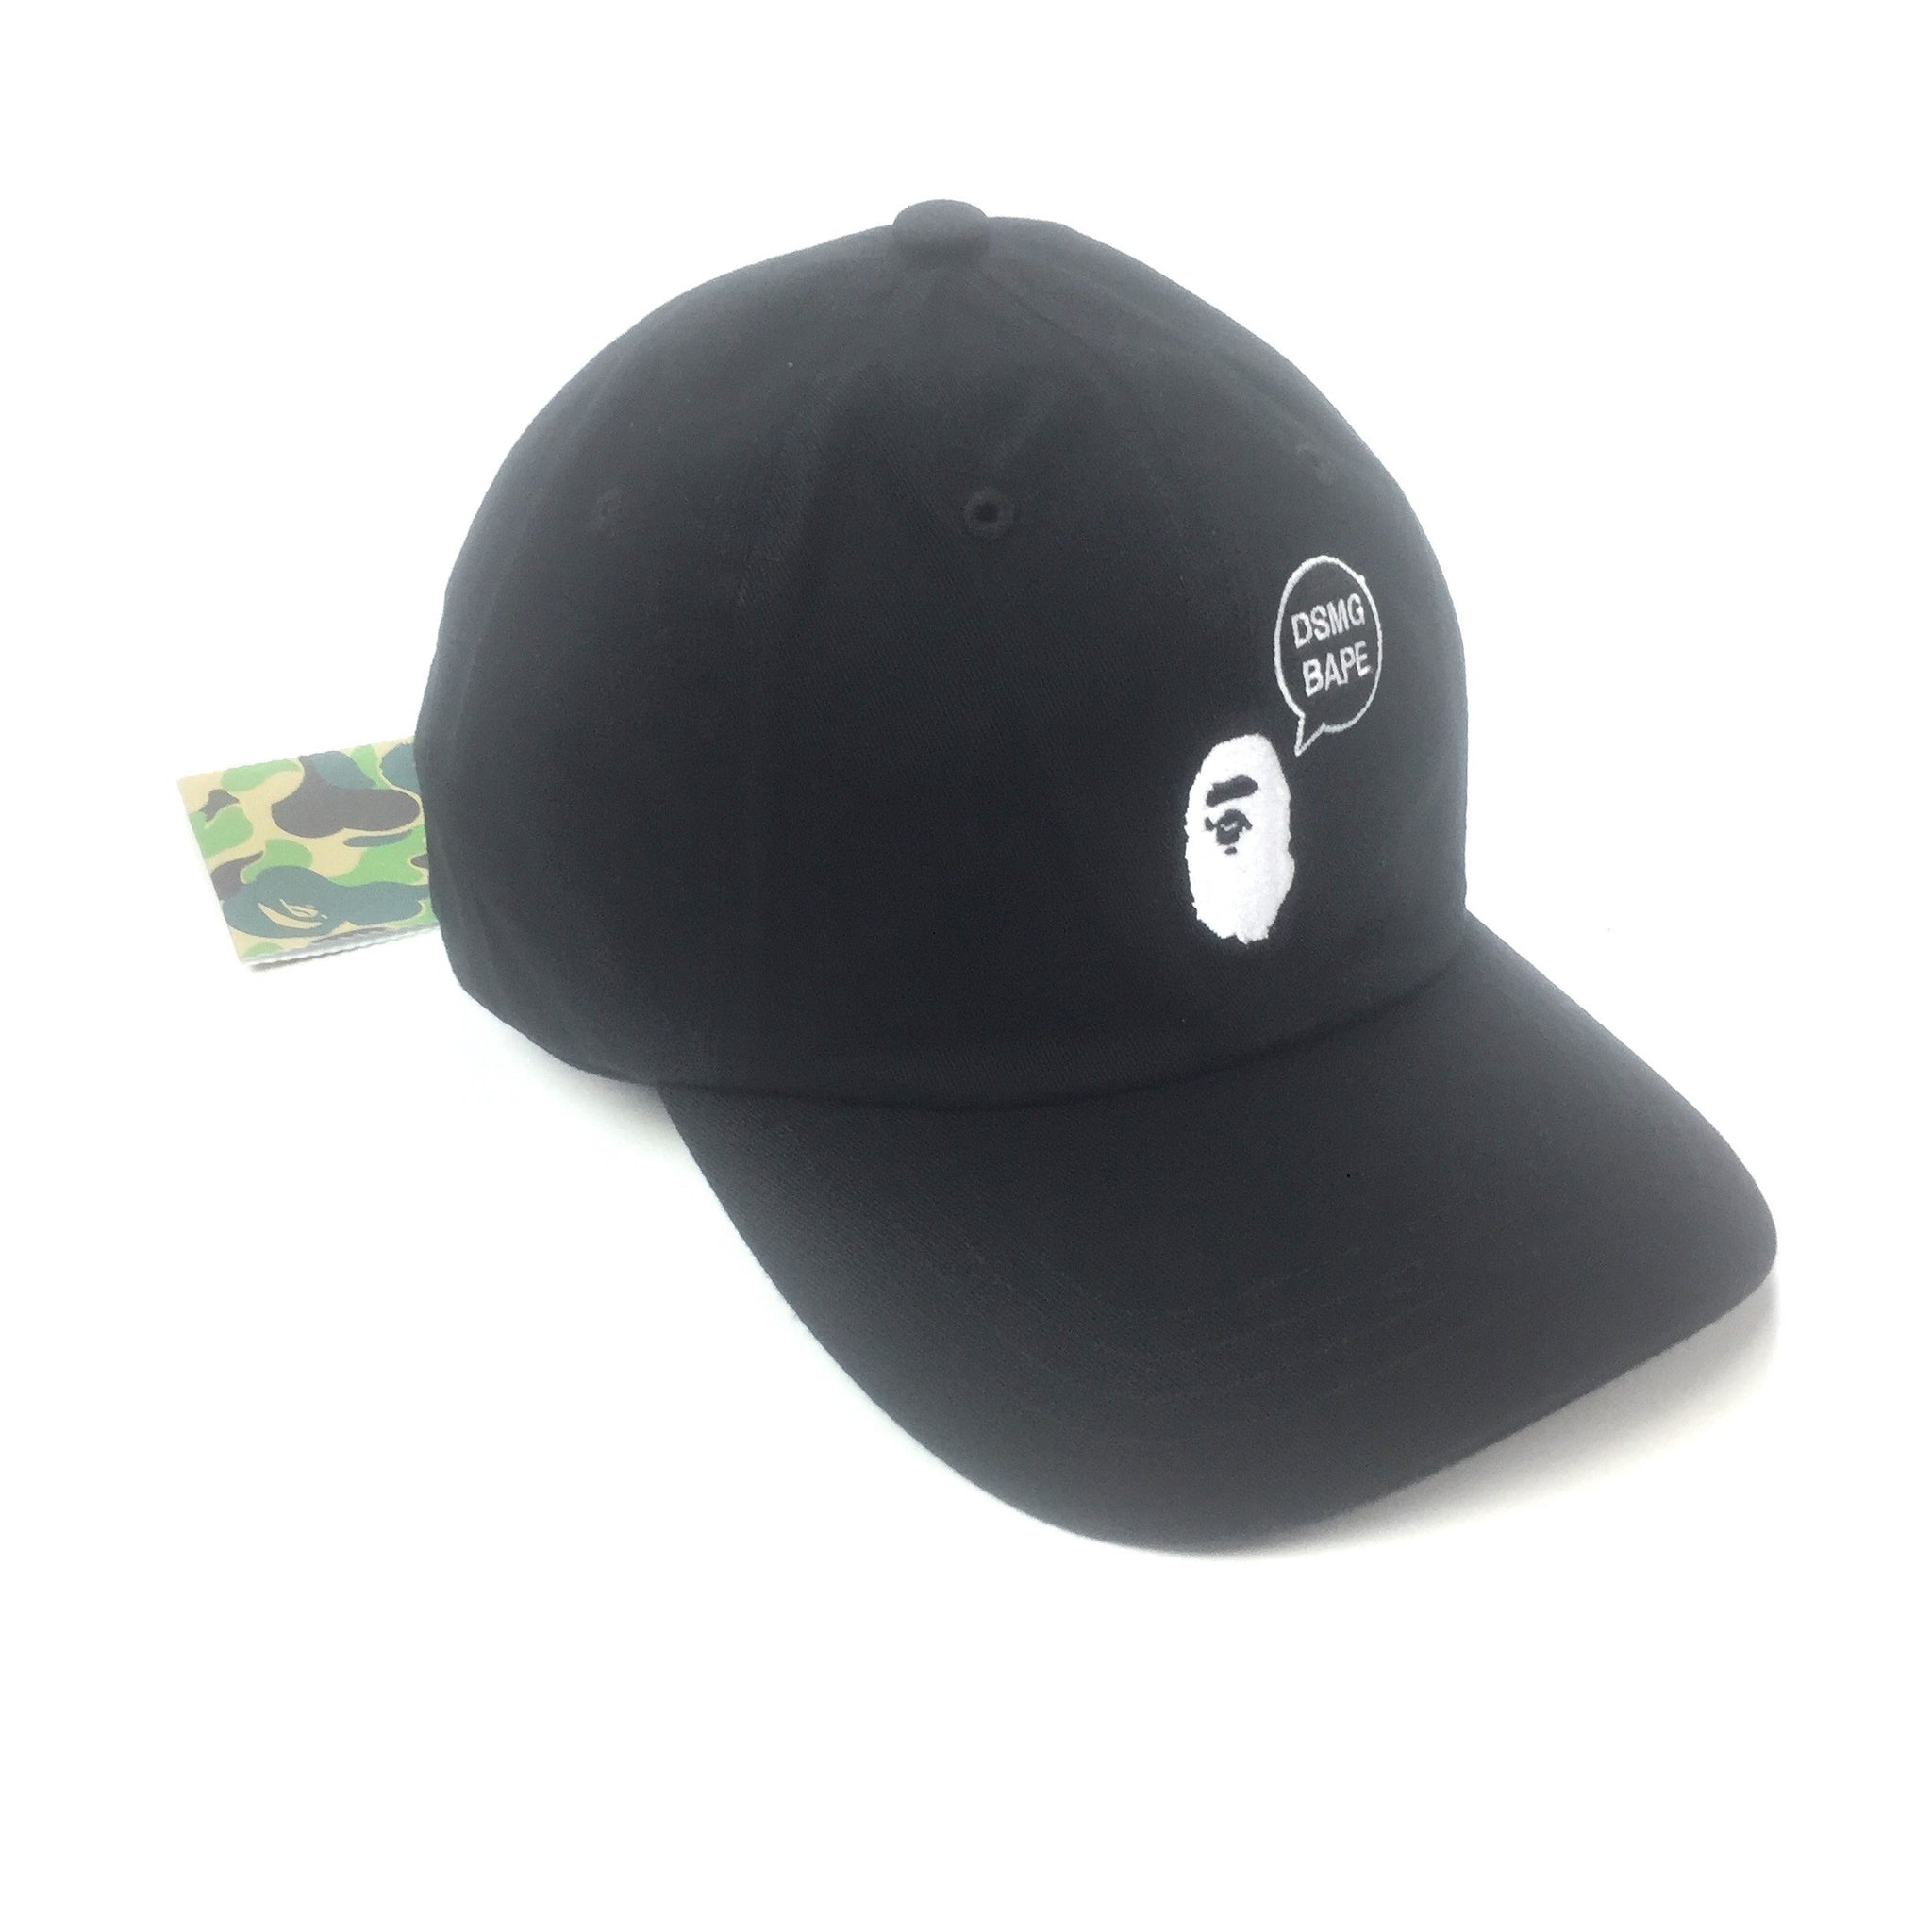 A Bathing Ape x DSM Ginza - Black Bape DSMG Logo Embroidered Dad Hat ... 38b6b5feeeb